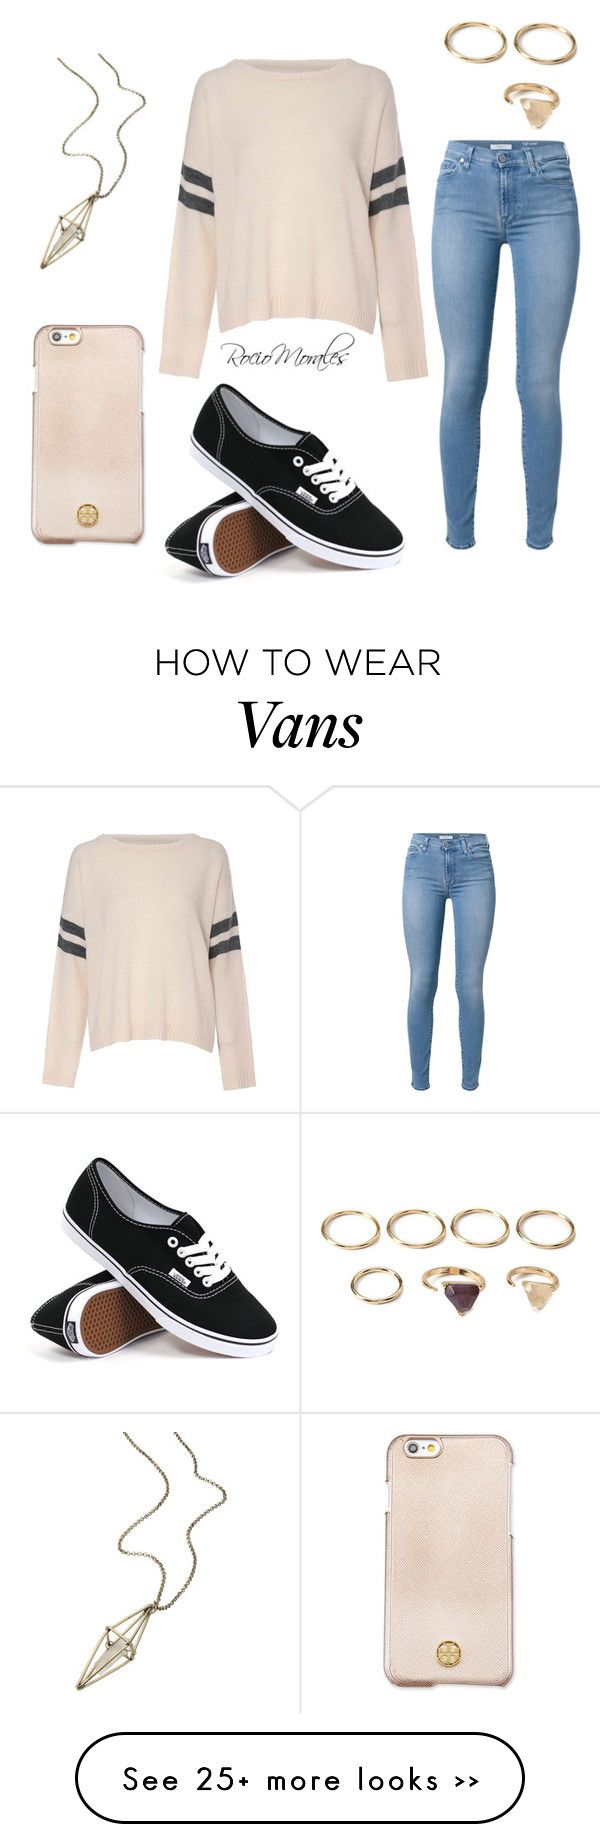 """Untitled #211"" by rocio06morales on Polyvore featuring Vans, Glamorous, 7 For All Mankind, Tory Burch, maurices and Forever 21"